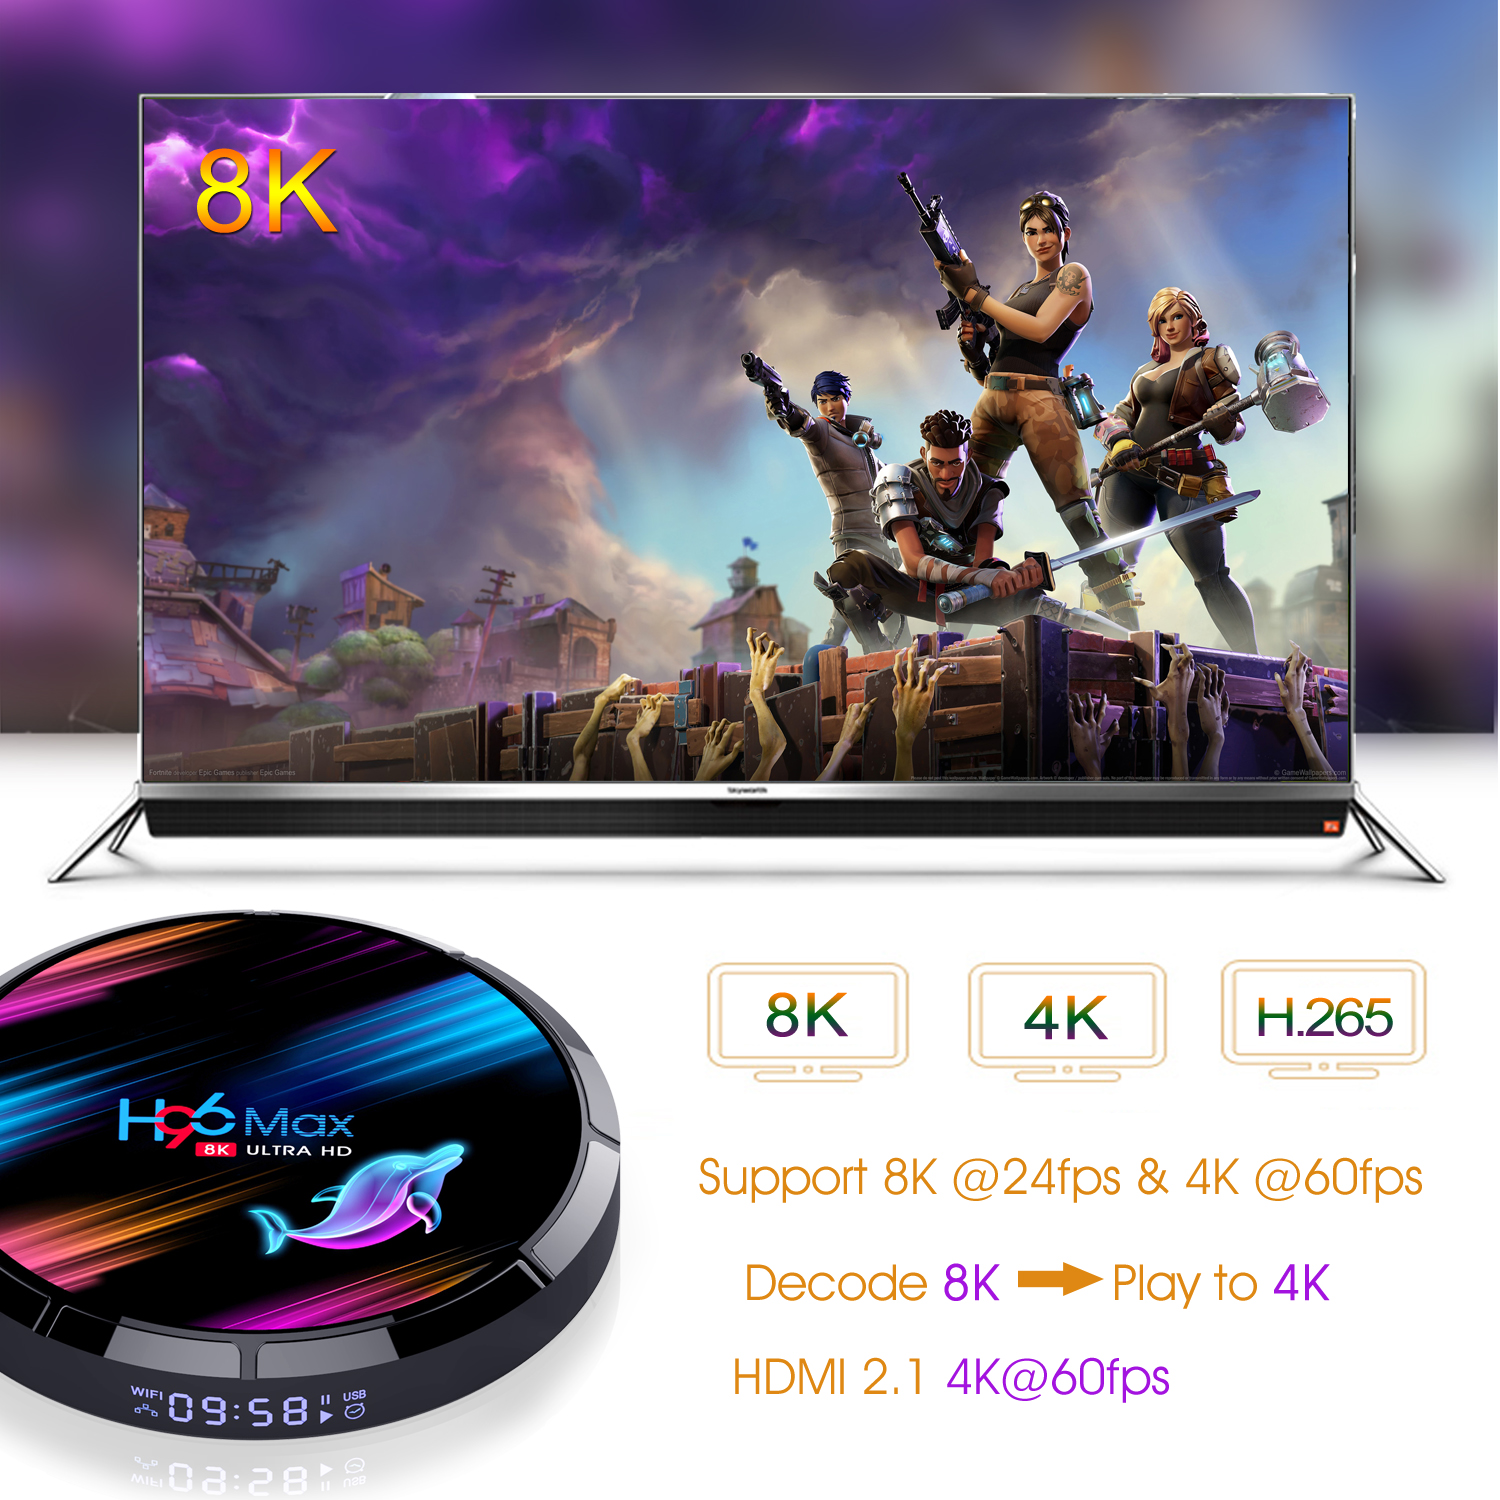 H96 Max X3 S905X3 8K ULTRA HD TV Box 4GB RAM + eMMC 32GB/ 64GB/ 128GB ROM 2.4G/5G WIFI 1000M Ethernet 9.0 Android Box 3